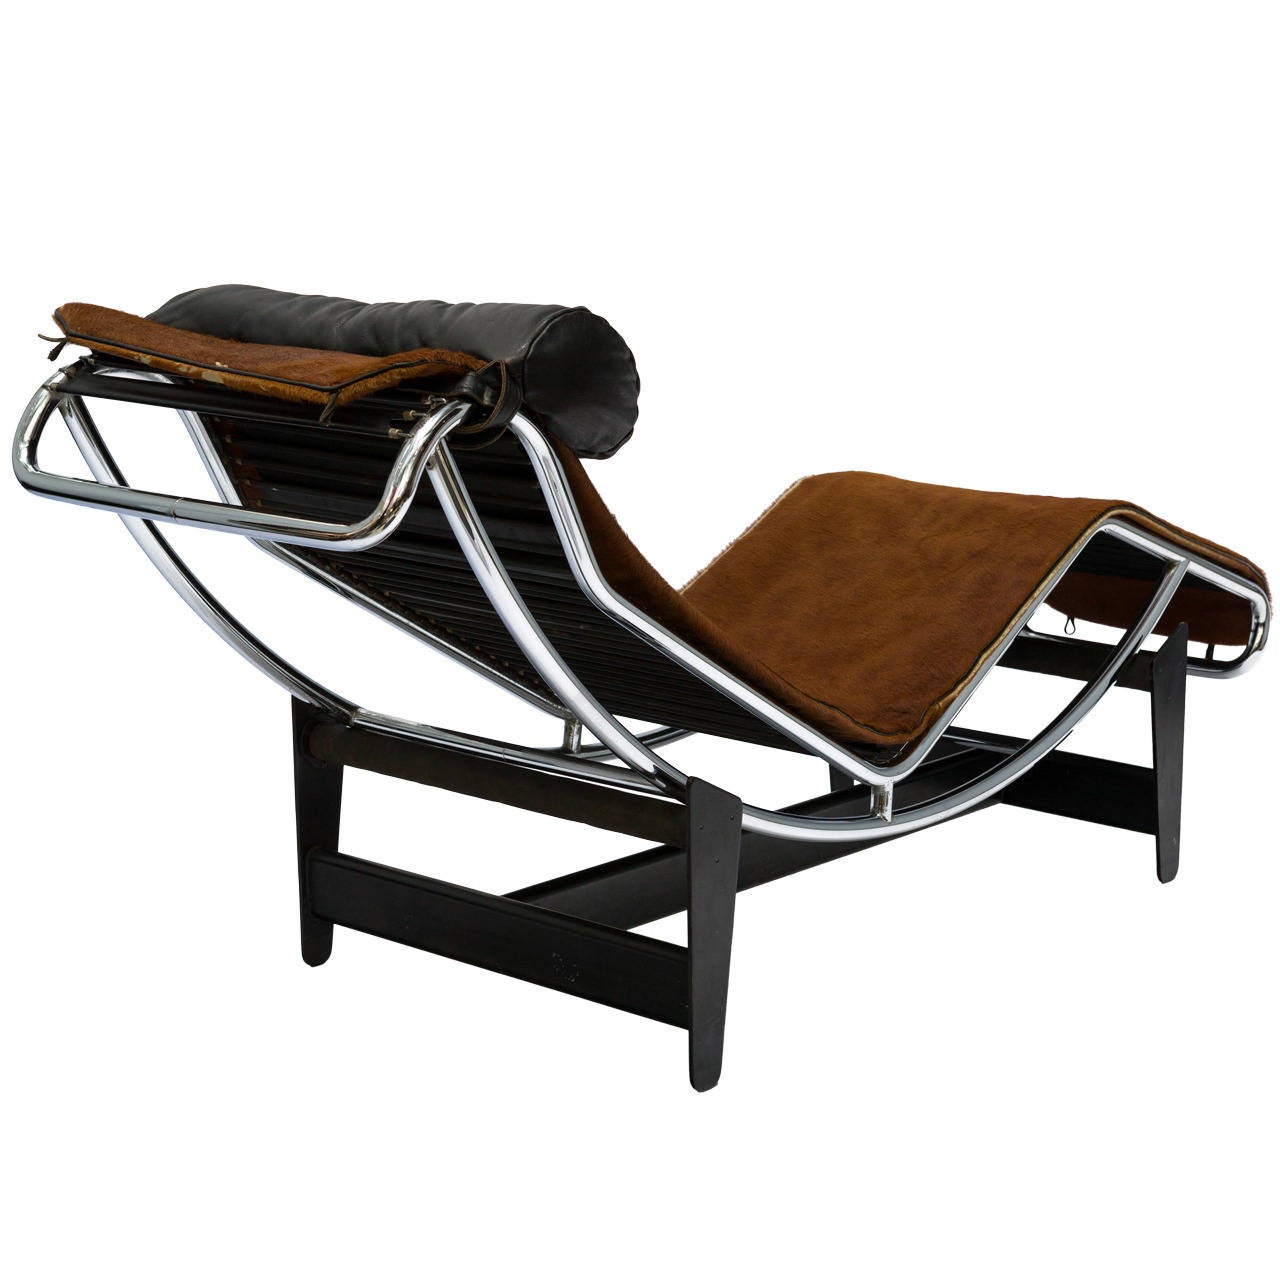 Le corbusier lc4 chaise lounge chair in cowhide for sale for Chaise corbusier